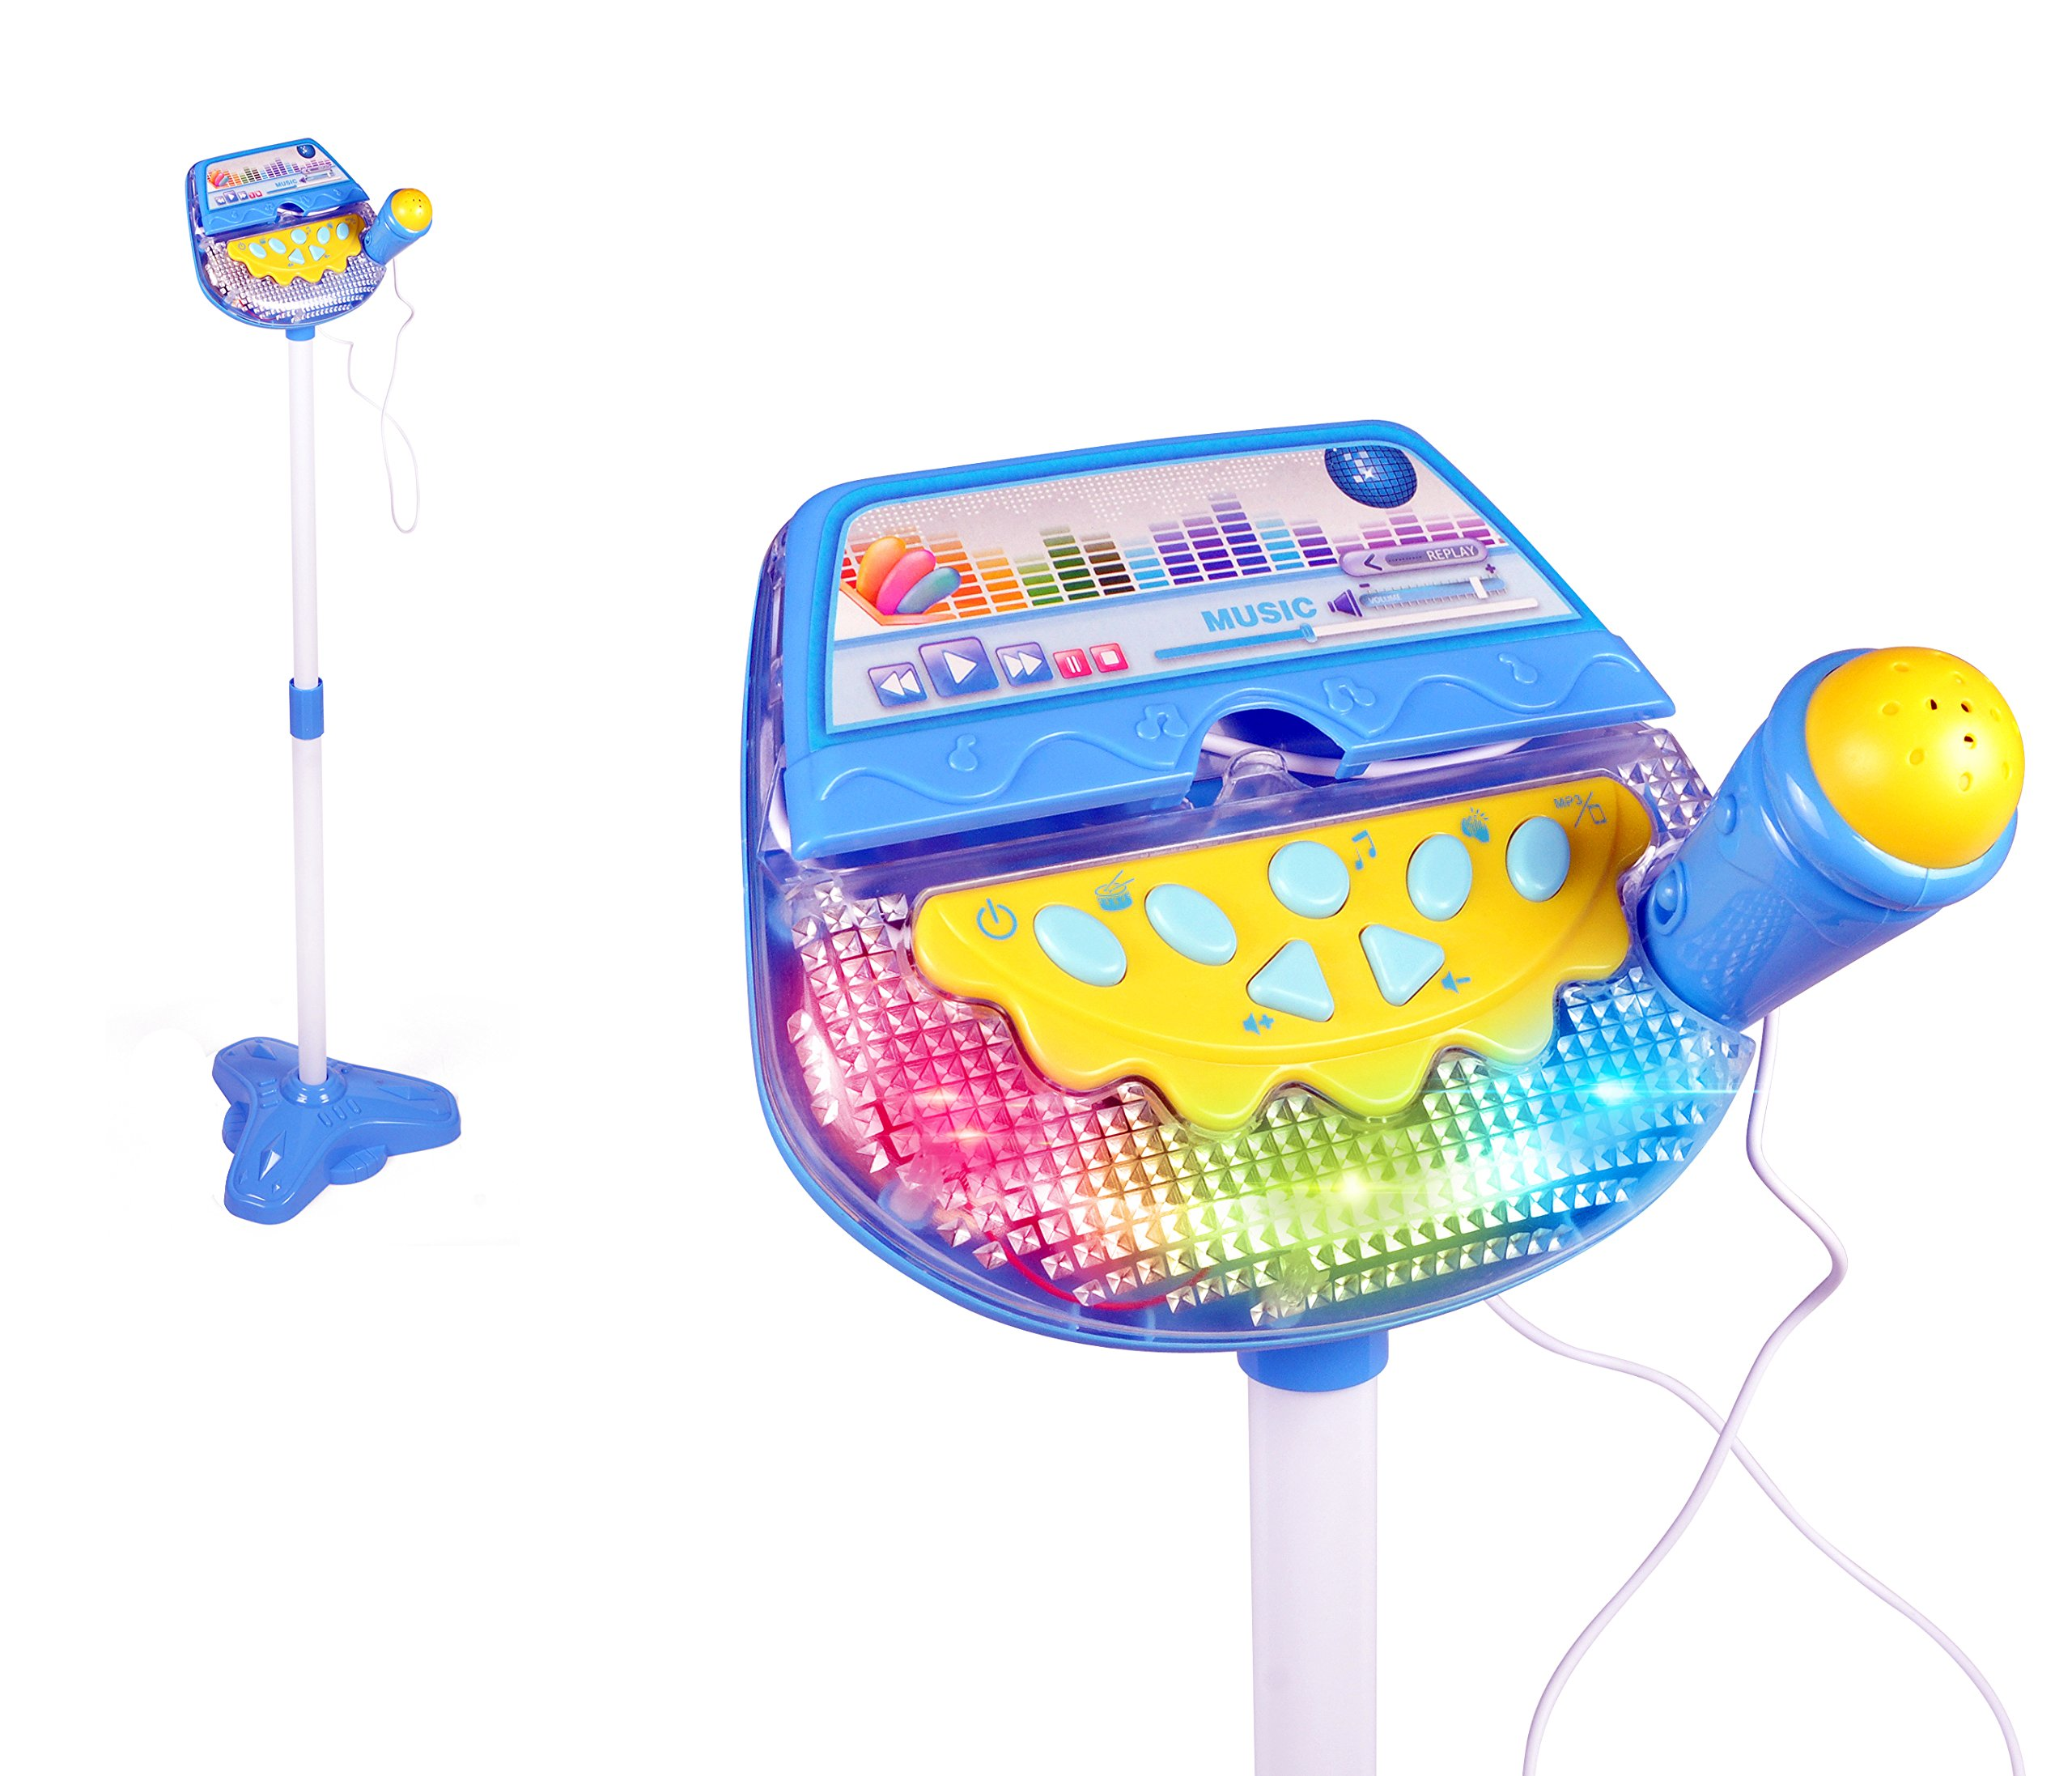 Rock Star Kids Karaoke Machine Sing Along Multifunctional Stand Up Microphone Toy Play Set w/ Built In MP3, Speaker, Adjustable Height